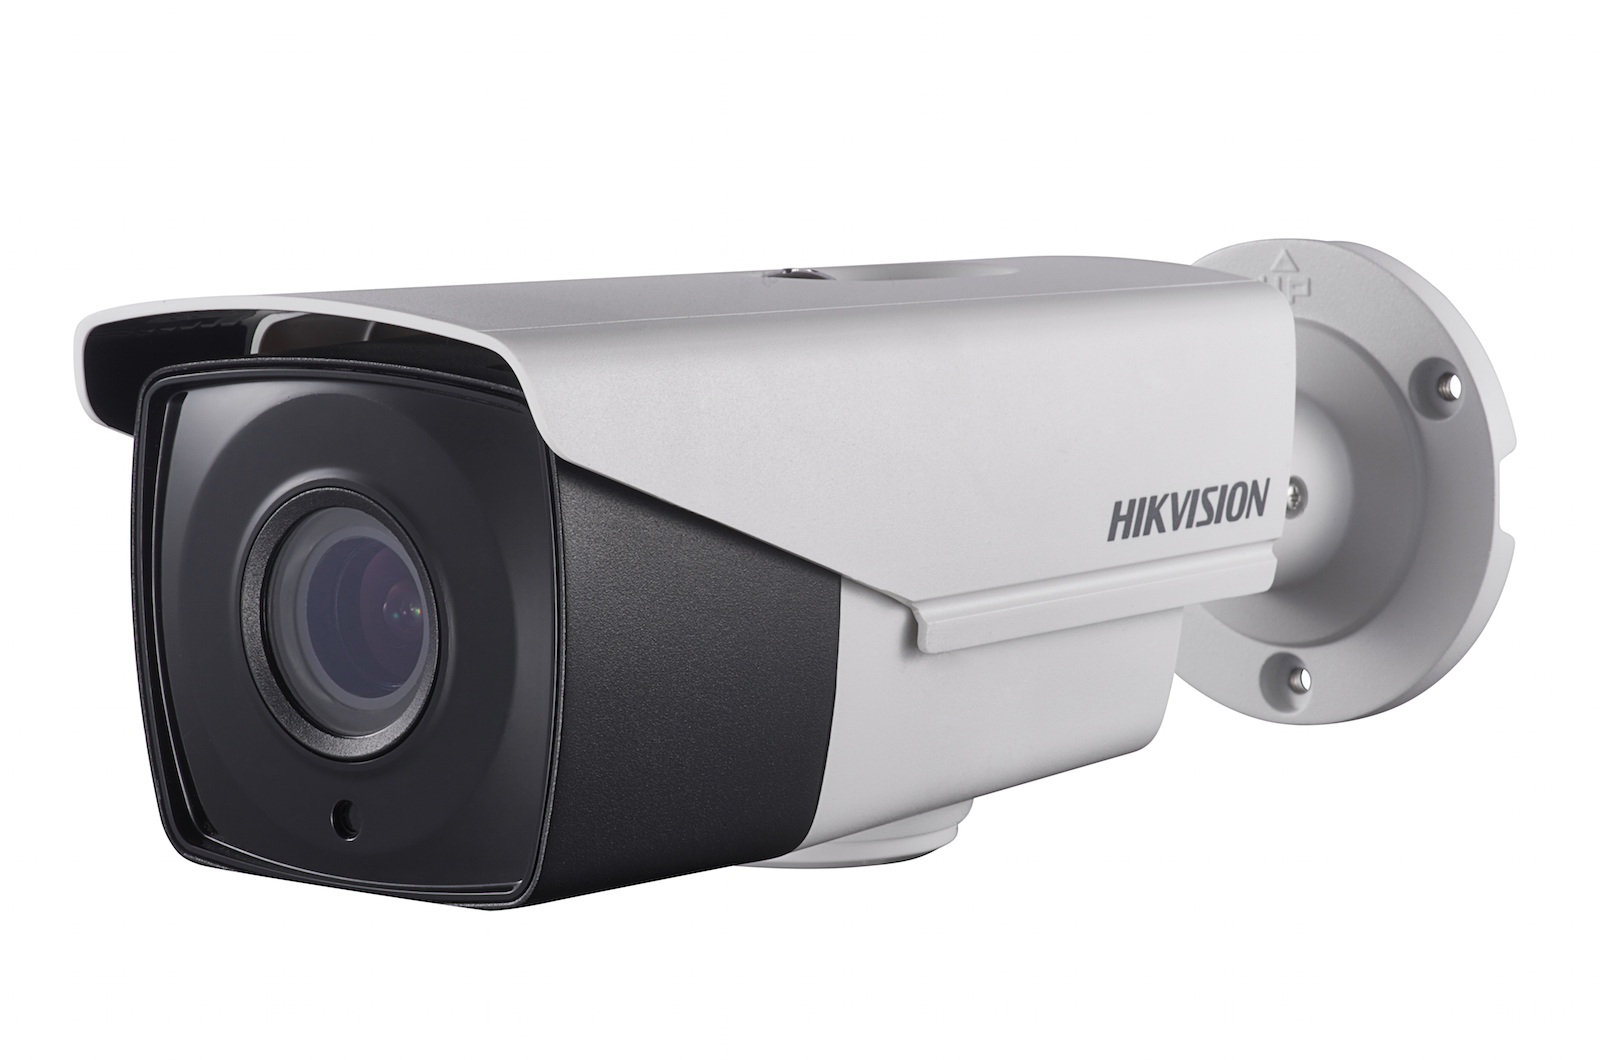 Hikvision DS-2CE16F7T-IT3Z 2.8-12mm